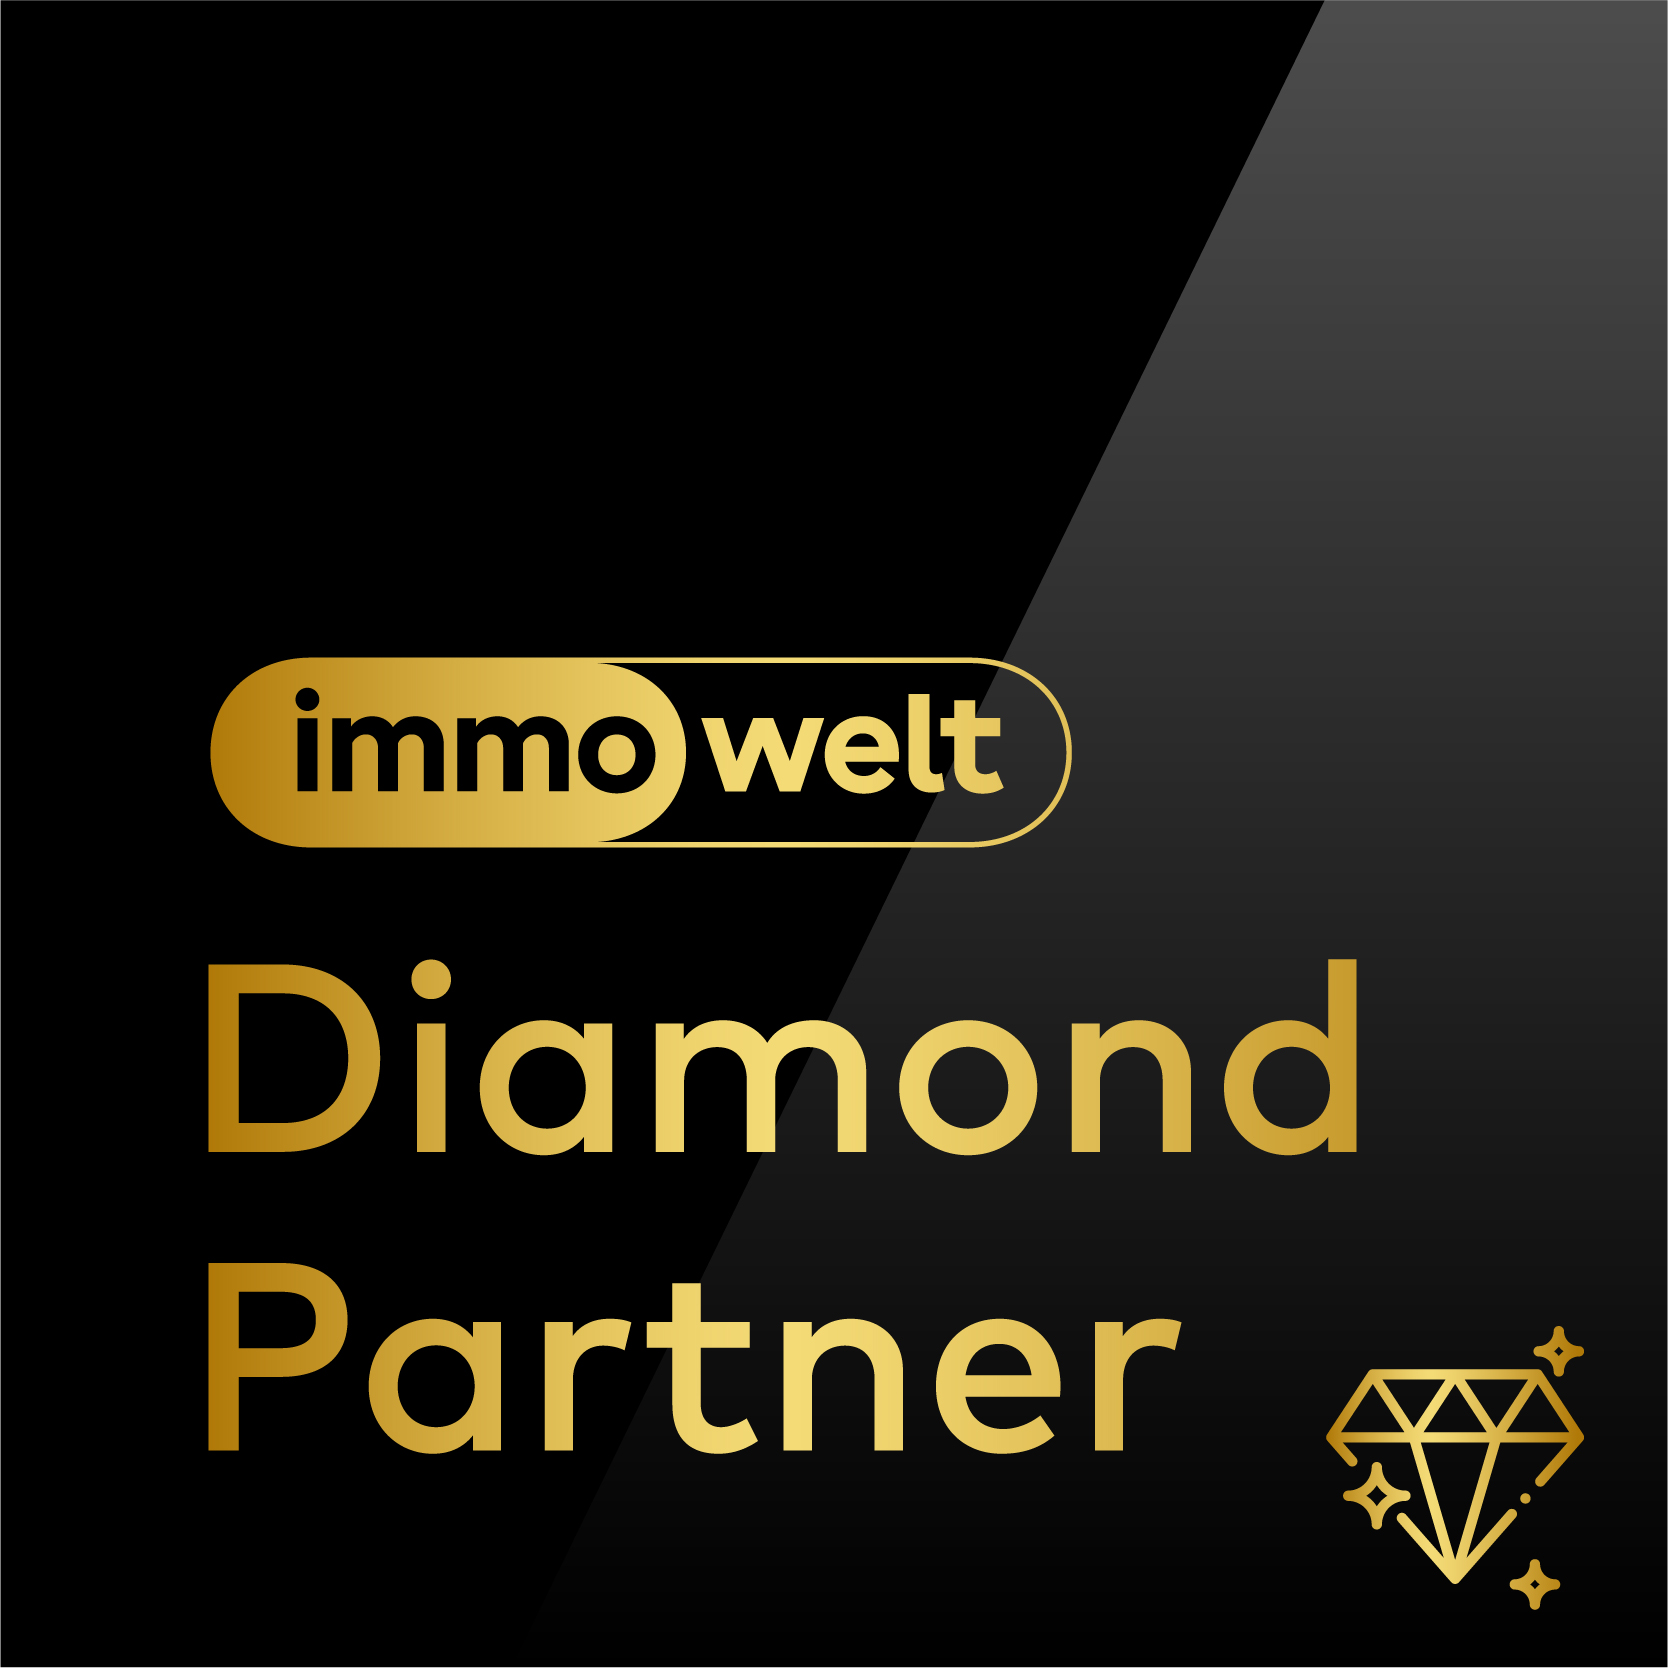 immowelt Diamond Partner Award